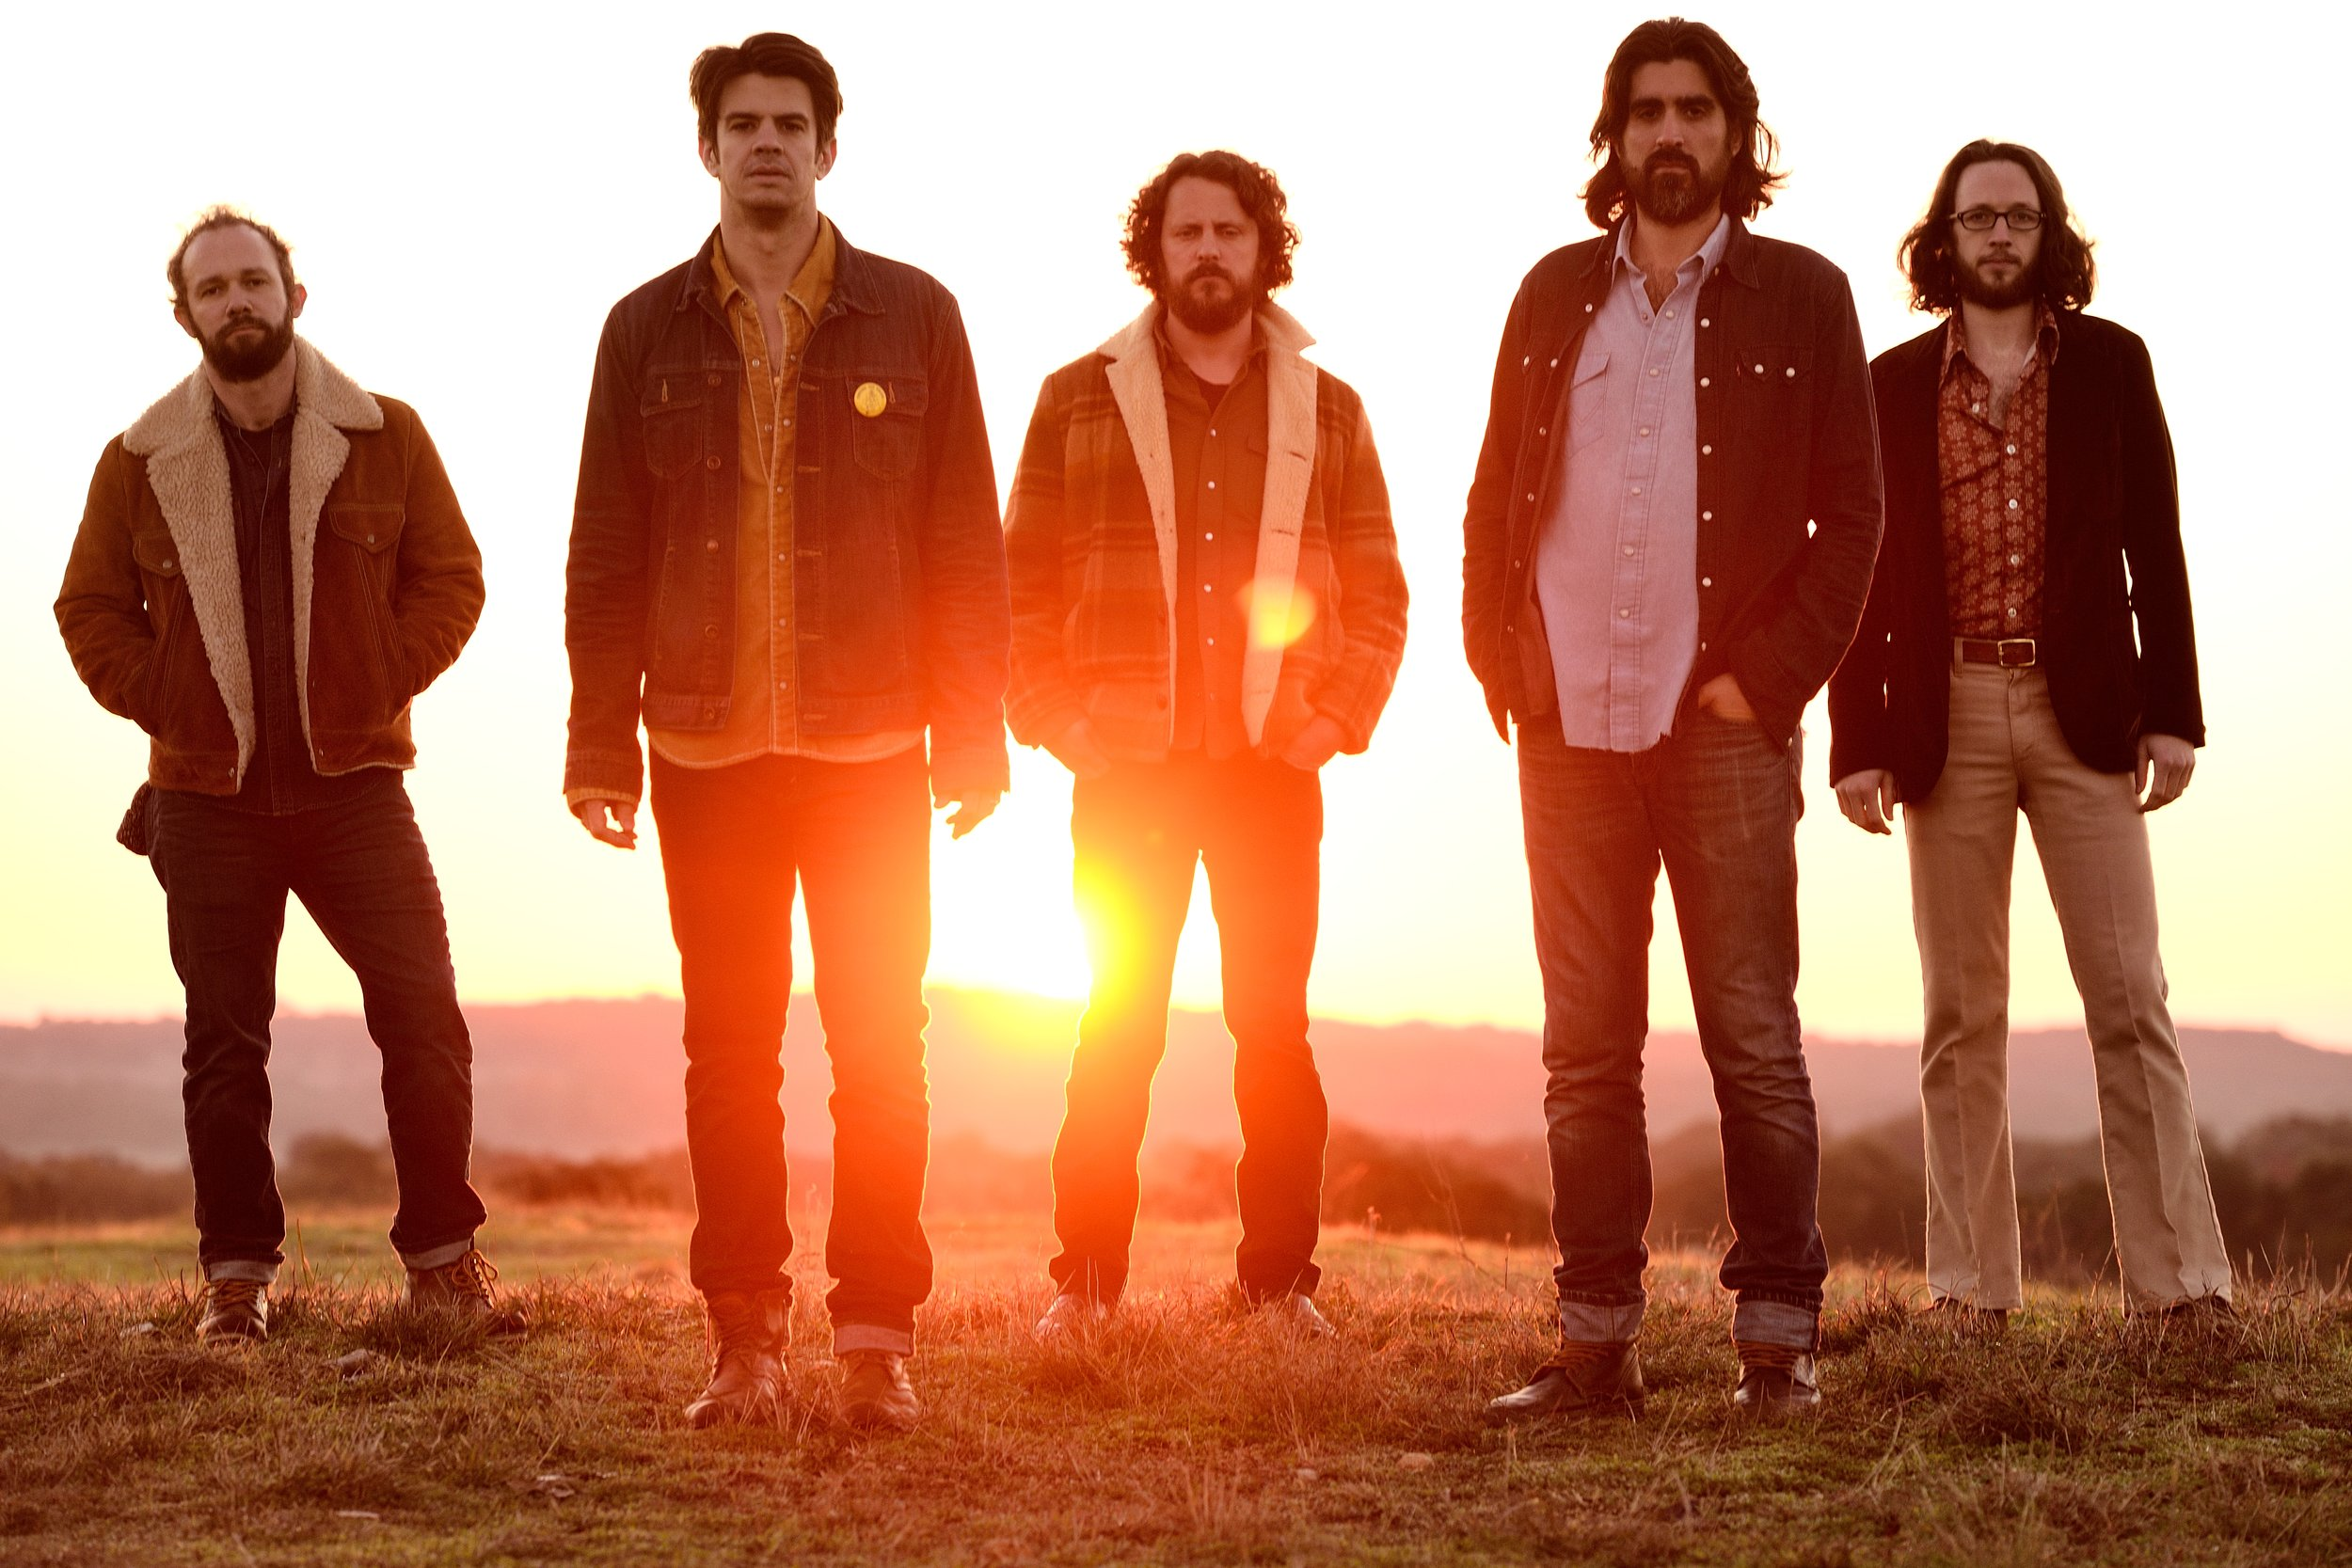 The Band of Heathens perform at 3TEN at ACL Live studio on October 28th, 7PM.